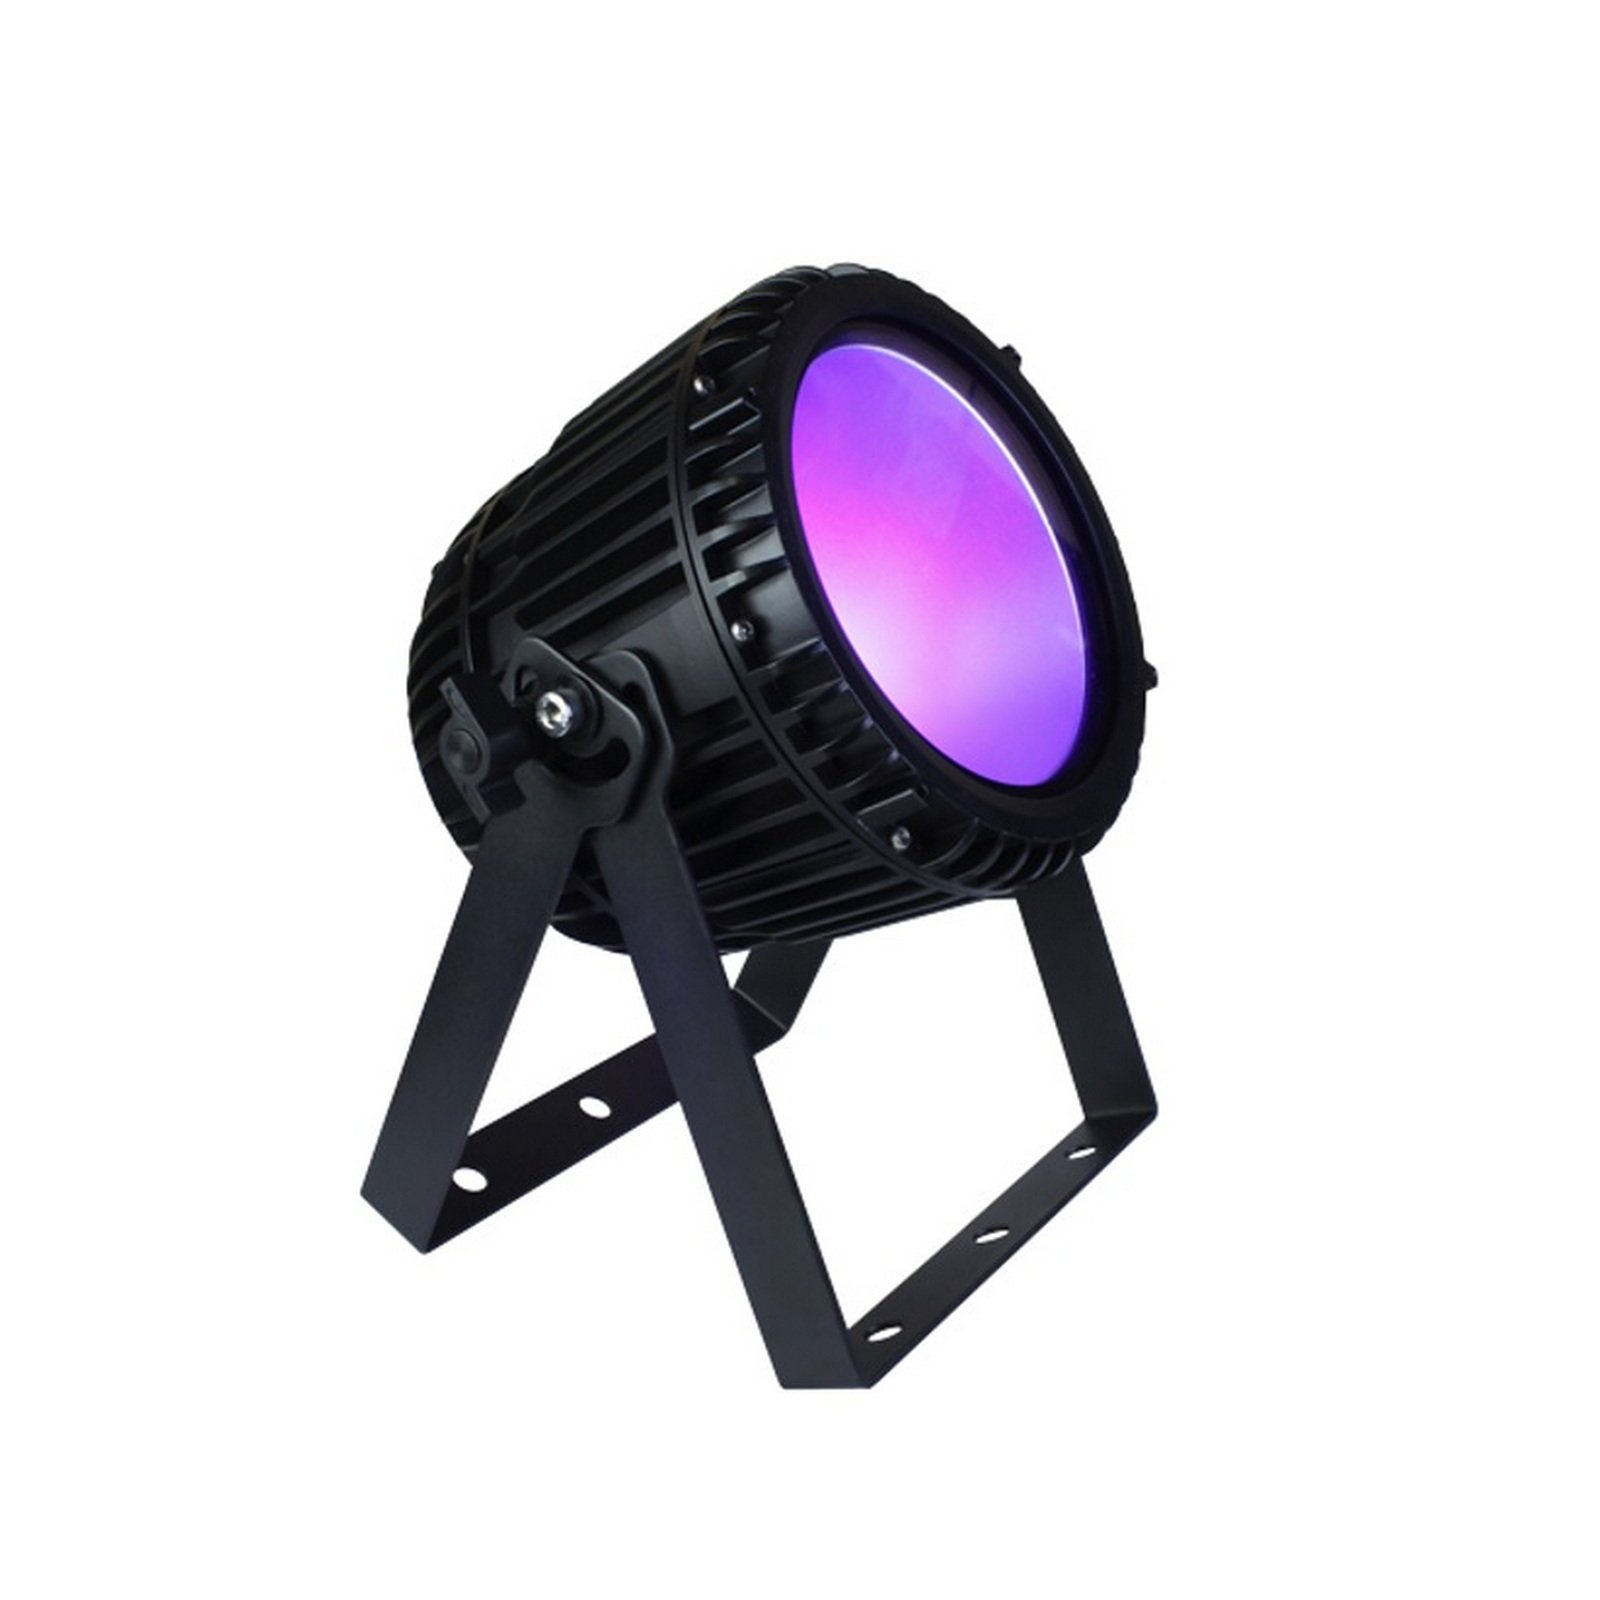 Blizzard Lighting TOURnado CSI COB | 1x 100W COB UV LED Par Fixture